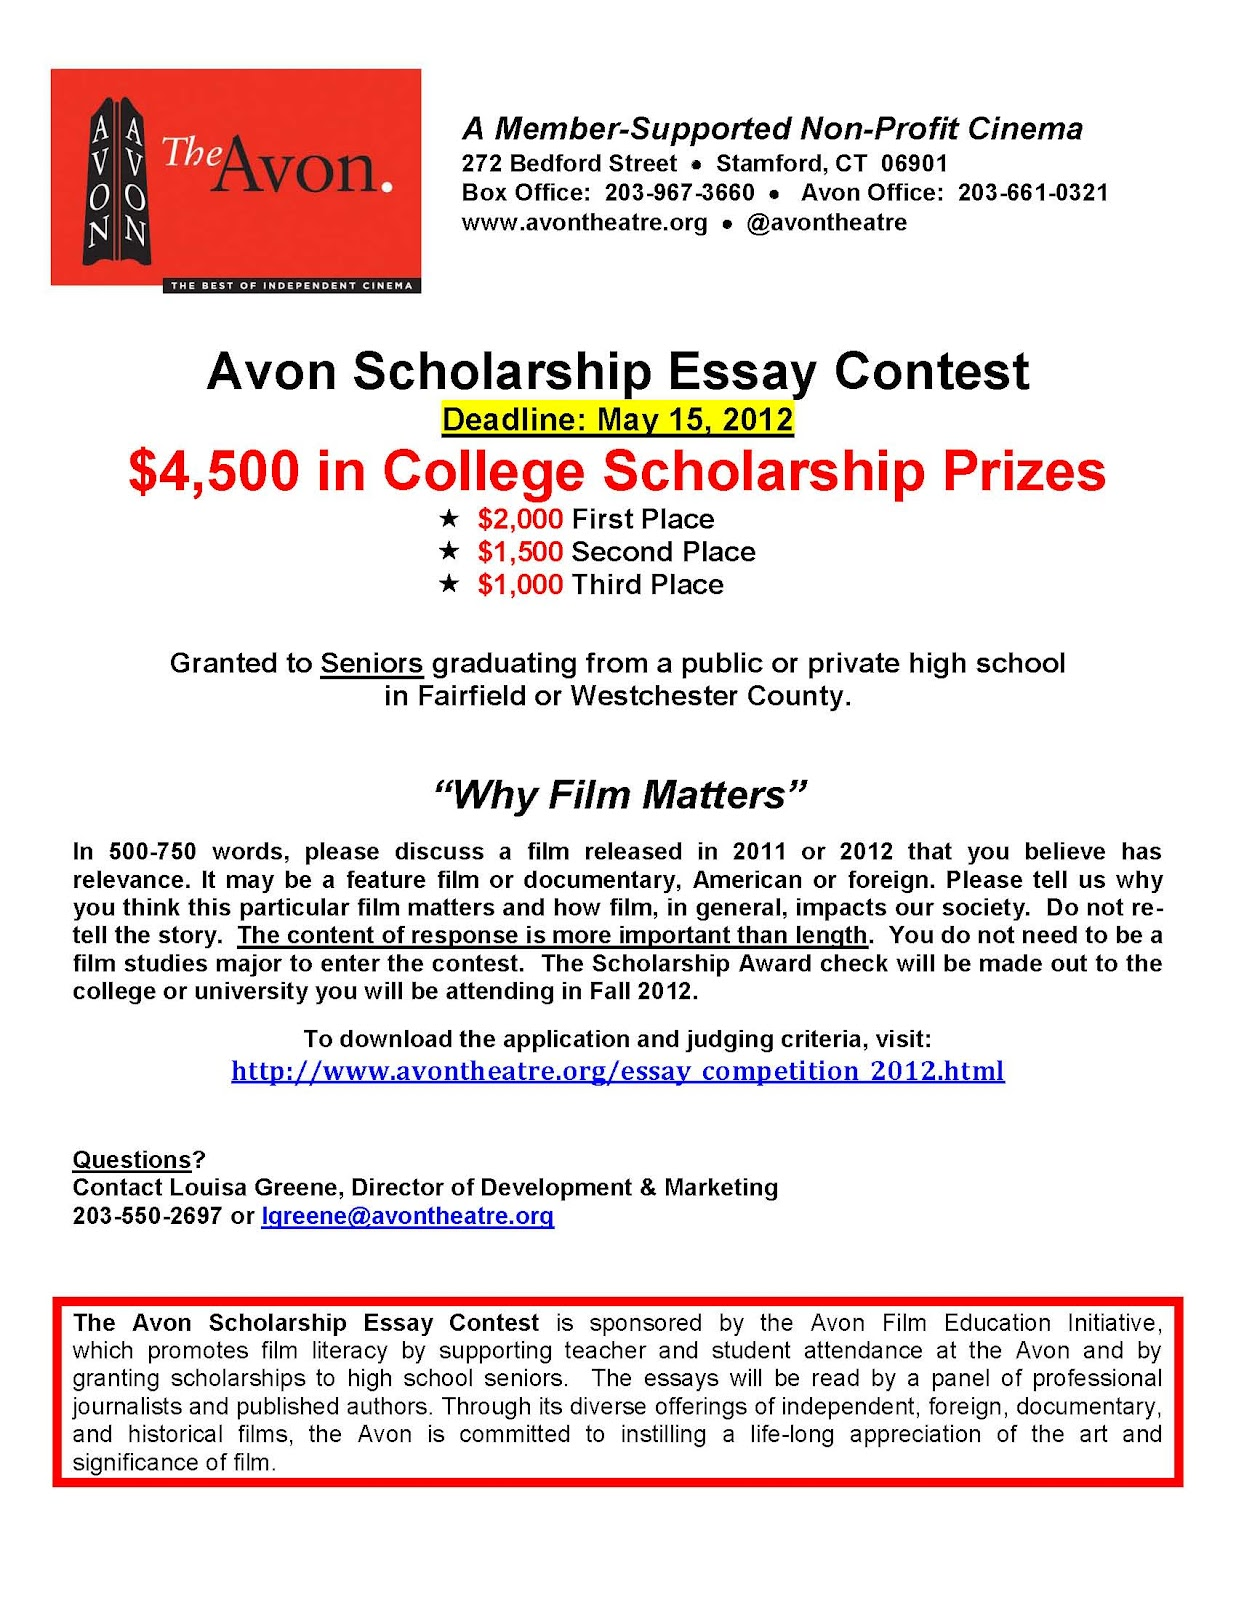 002 No Essay Collegeip Prowler Freeips For High School Seniors Avonscholarshipessaycontest2012 In Texas California Class Of Short Example Wondrous Scholarship Scholarships Niche Reddit Legit Full